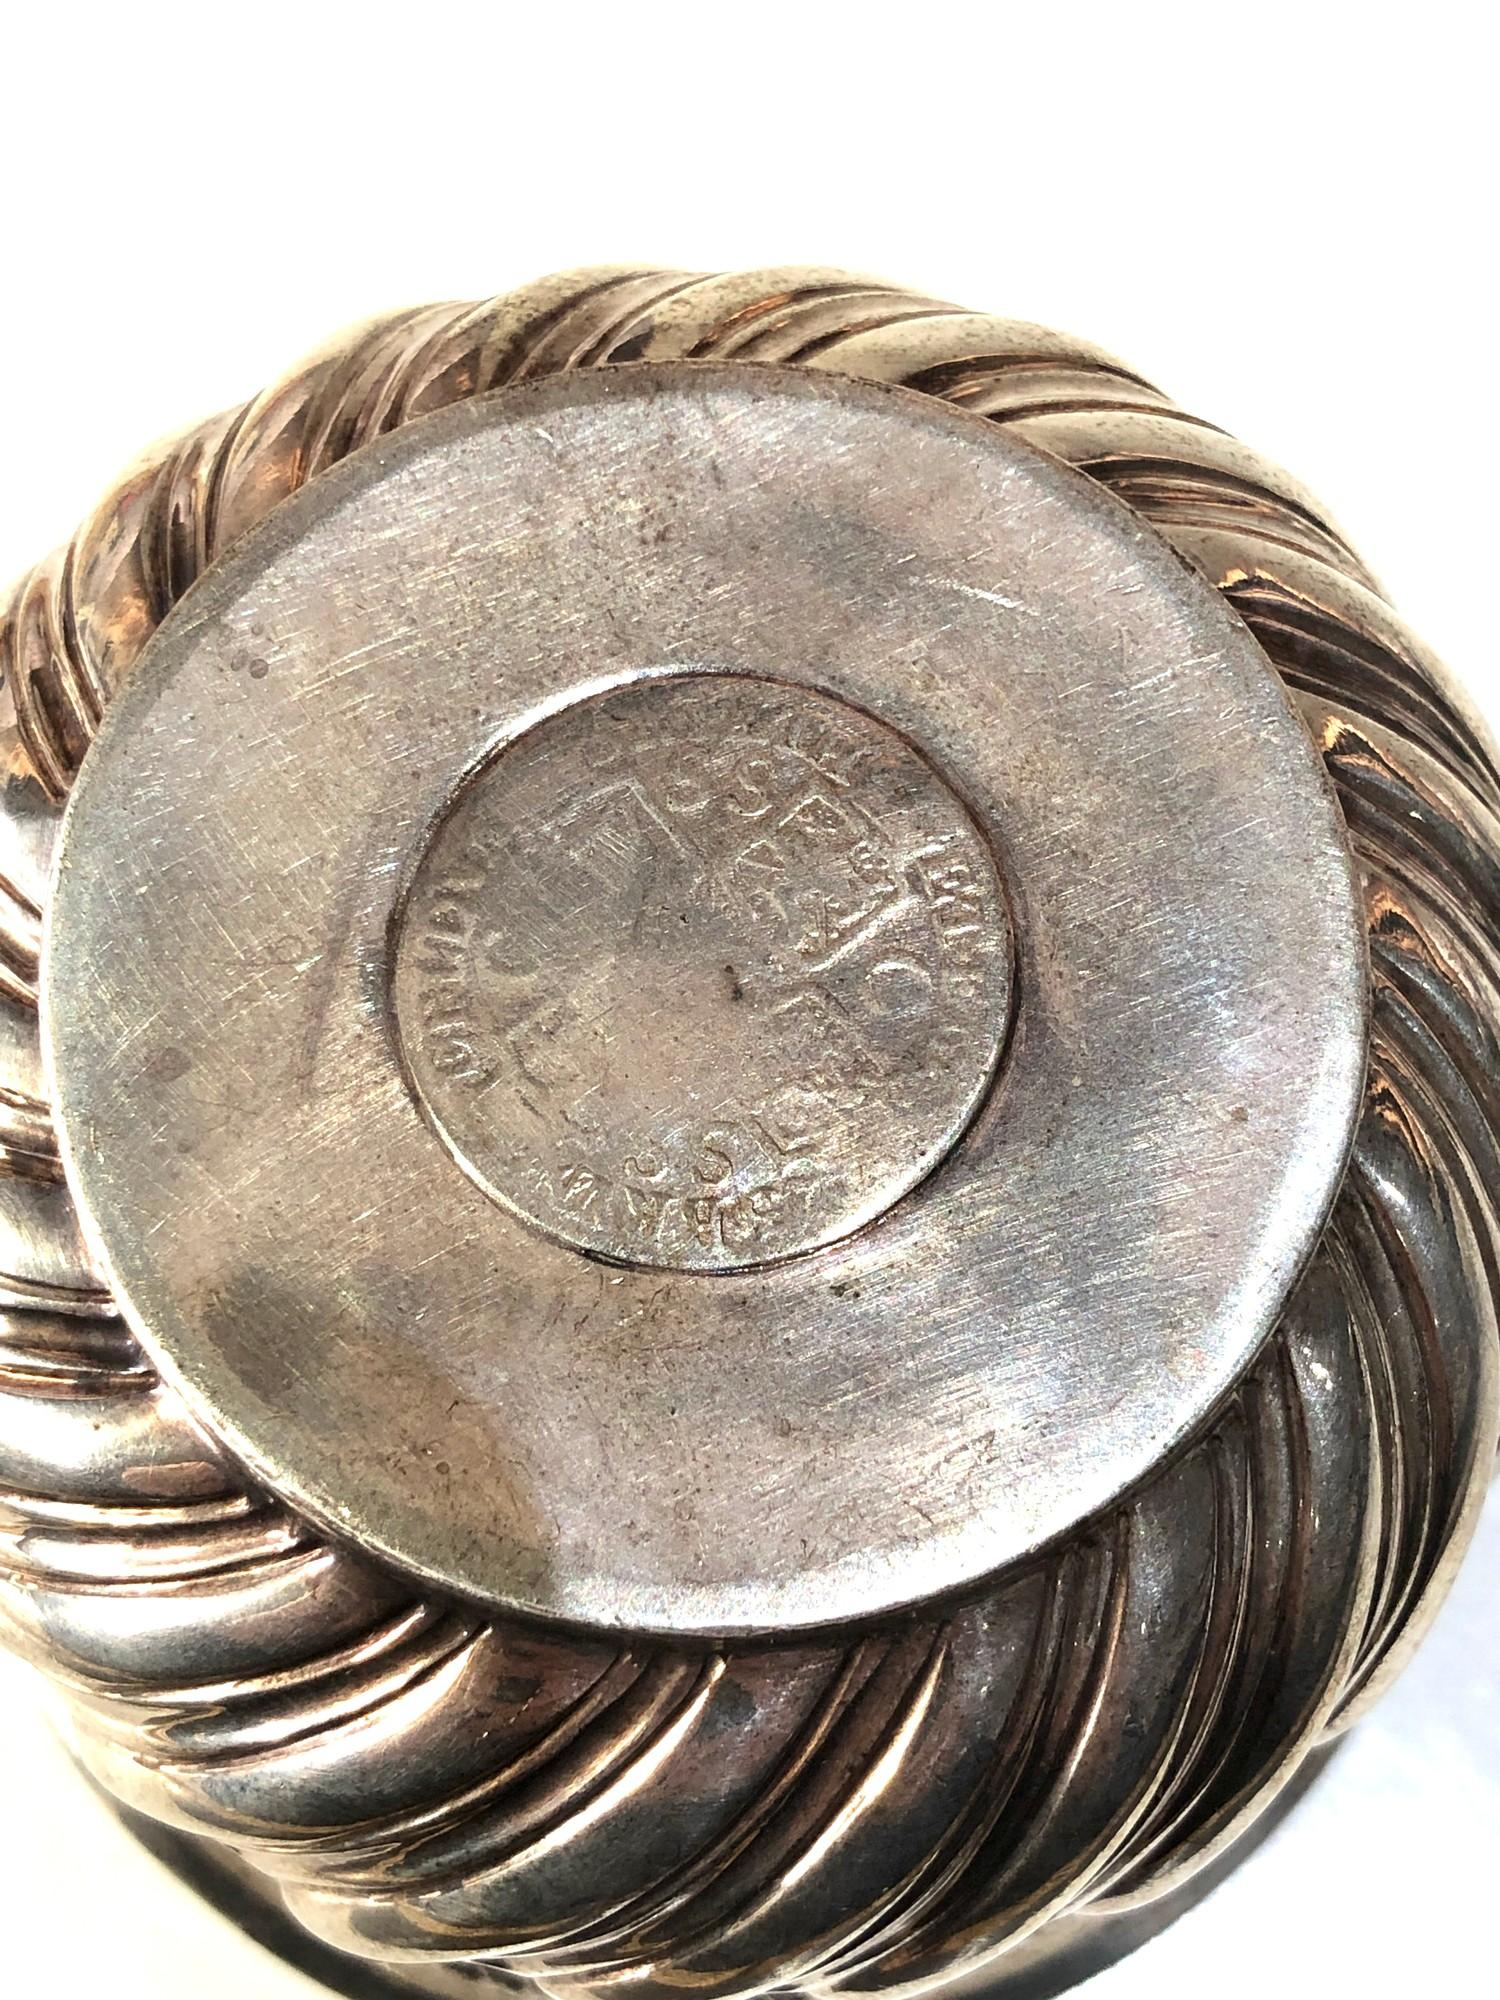 Antique victorian silver bowl with coin insert measures approx 9cm dia height 6.2cm London silver - Image 5 of 6